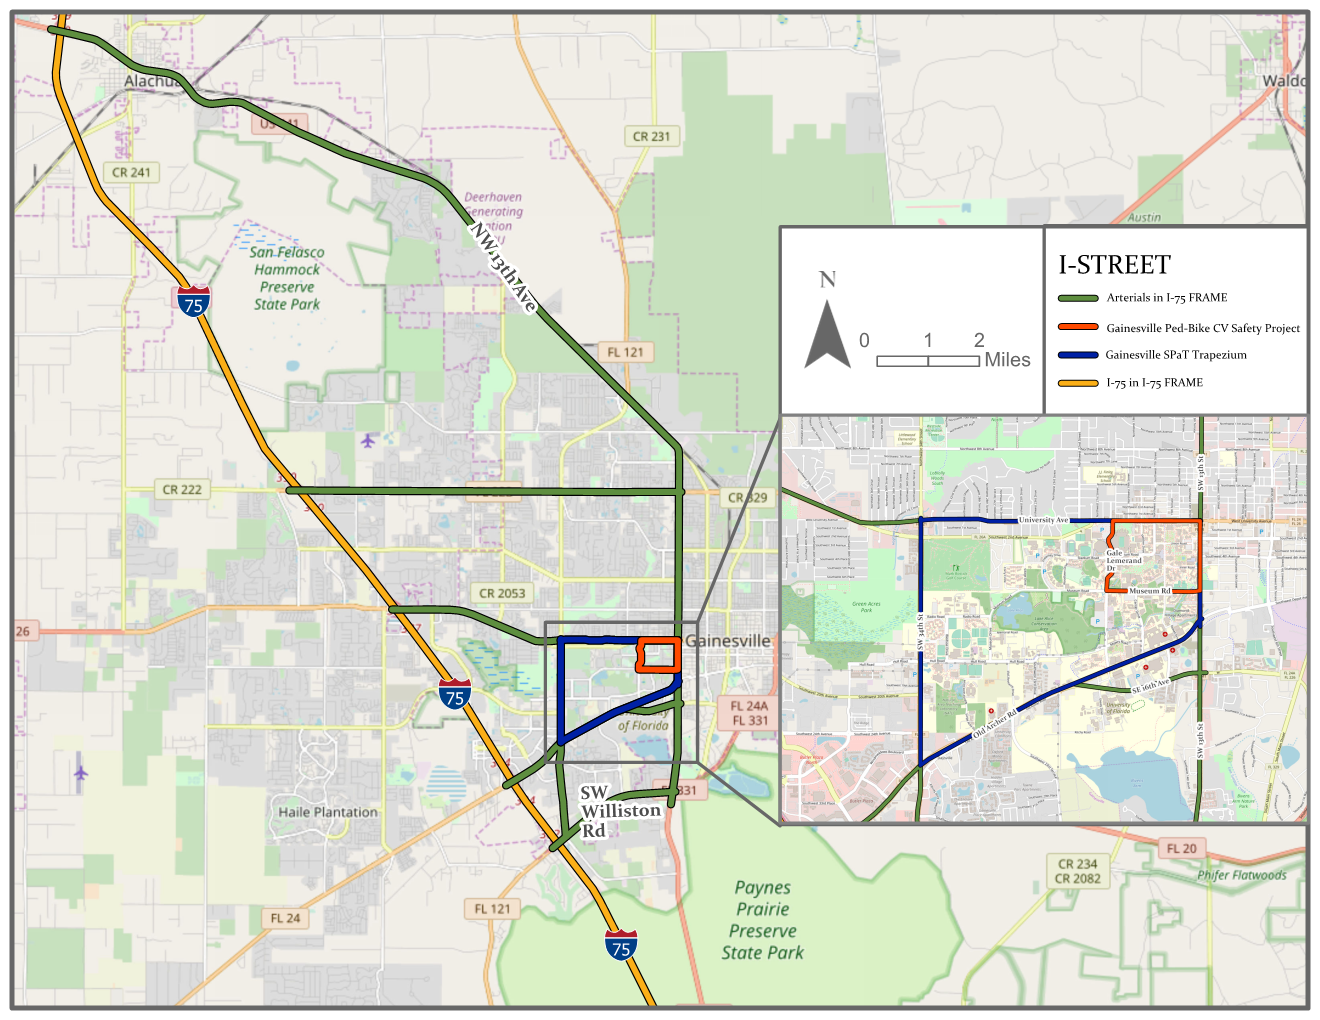 Updated I-STREET Map_1.2.2020